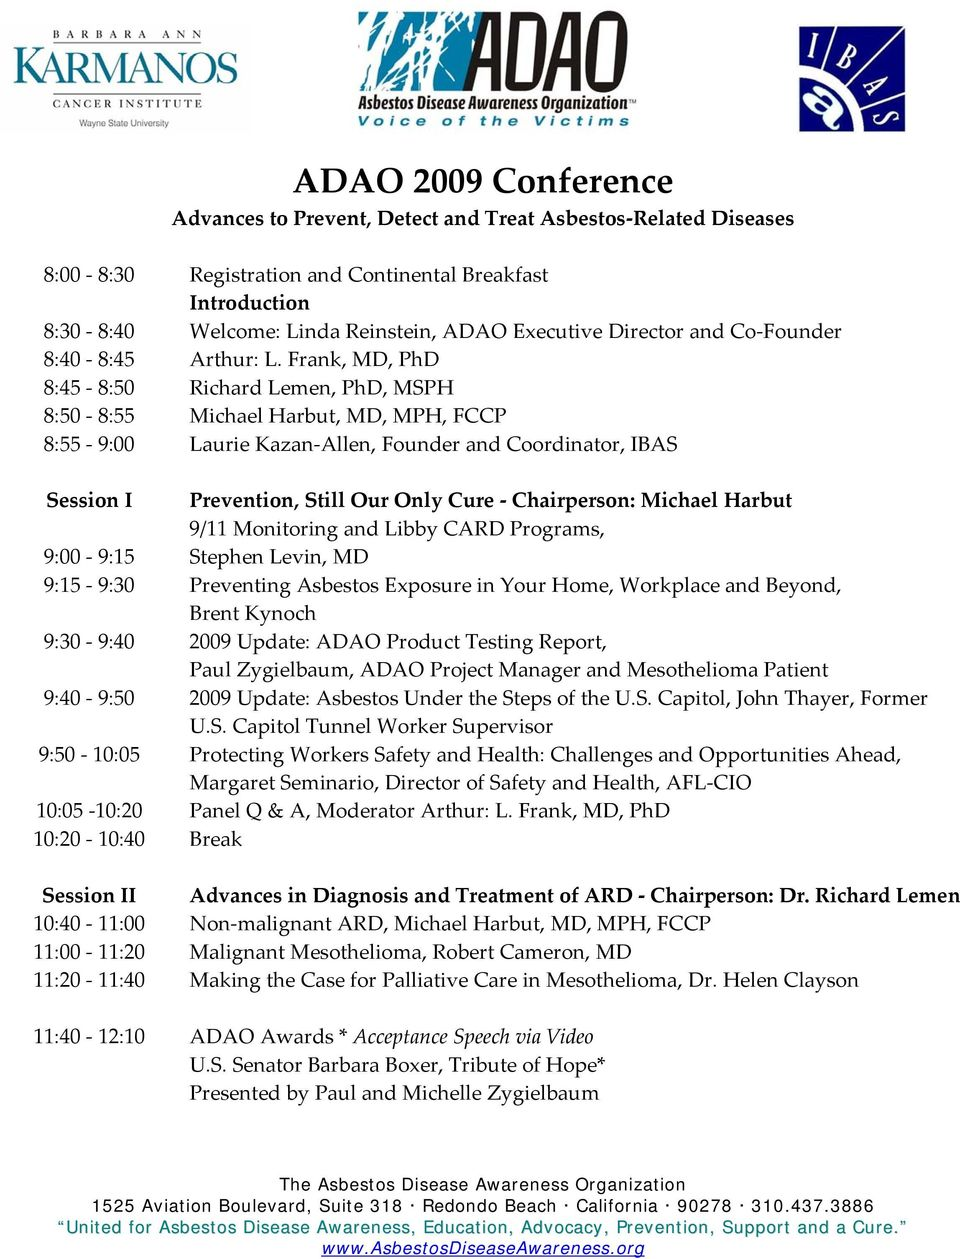 Frank, MD, PhD 8:45 8:50 Richard Lemen, PhD, MSPH 8:50 8:55 Michael Harbut, MD, MPH, FCCP 8:55 9:00 Laurie Kazan Allen, Founder and Coordinator, IBAS Session I Prevention, Still Our Only Cure